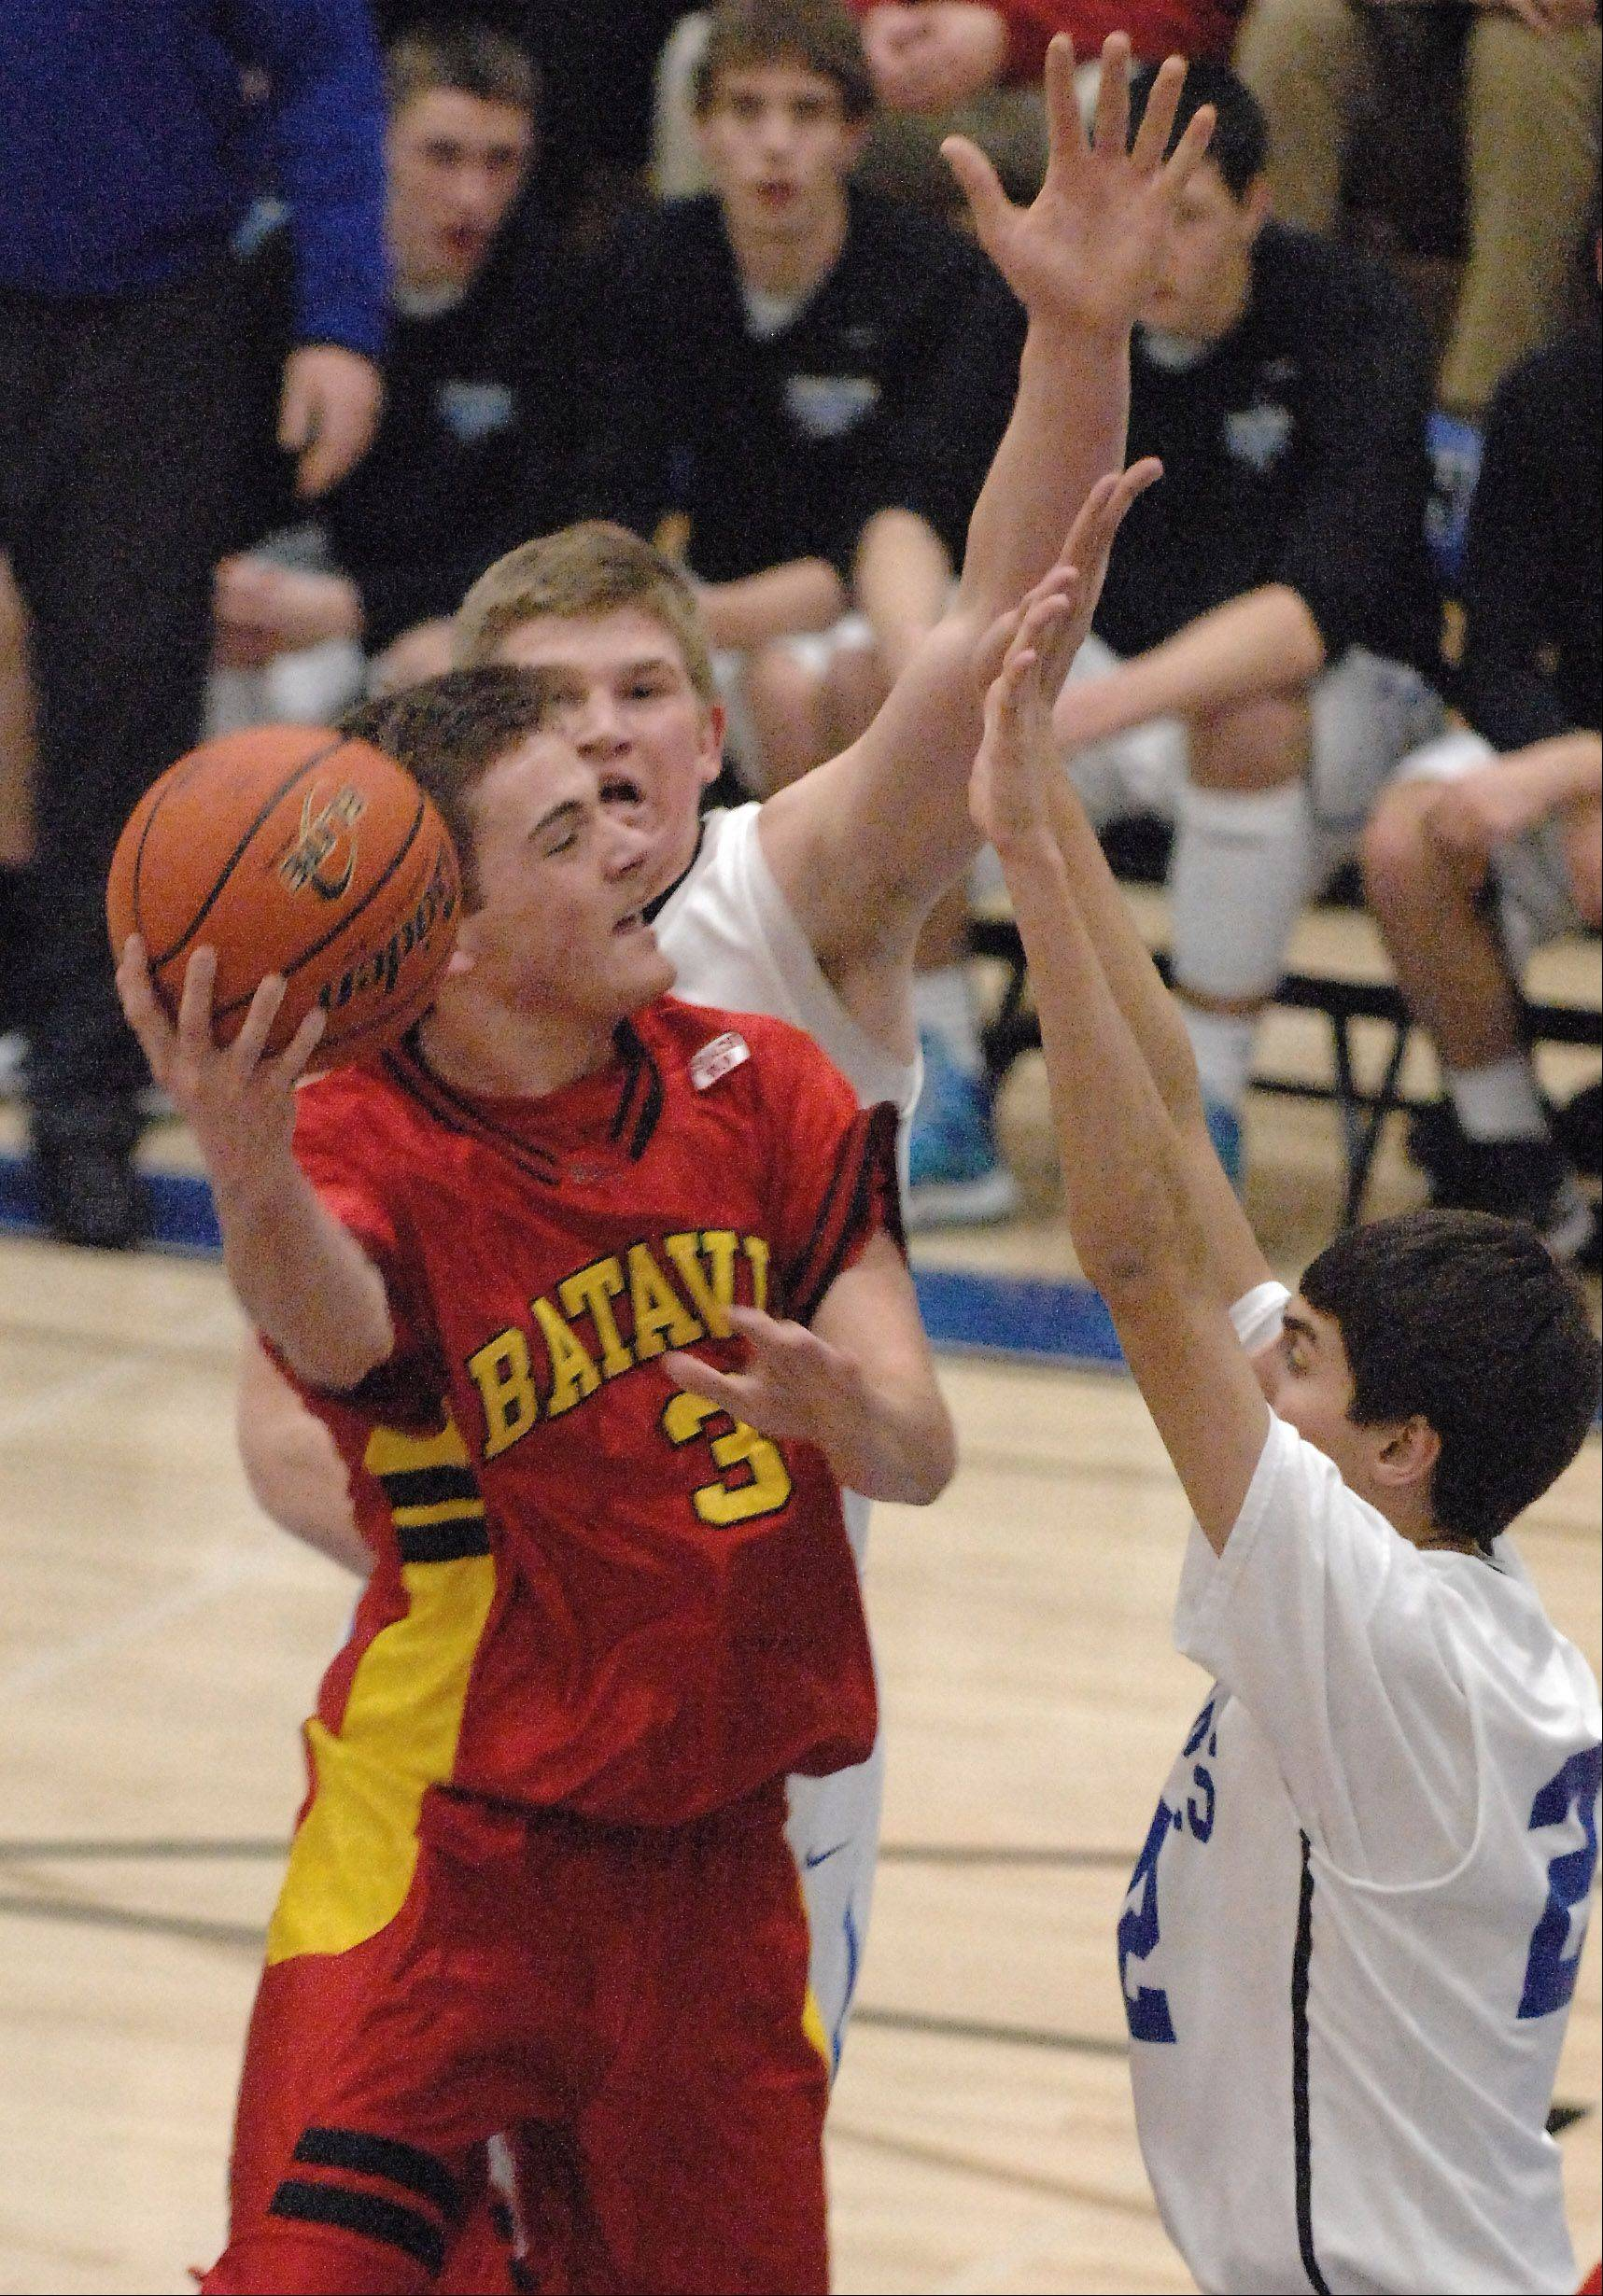 Batavia's Jake Pollack navigates a crowded lane as he tries to shoot against St. Charles North.